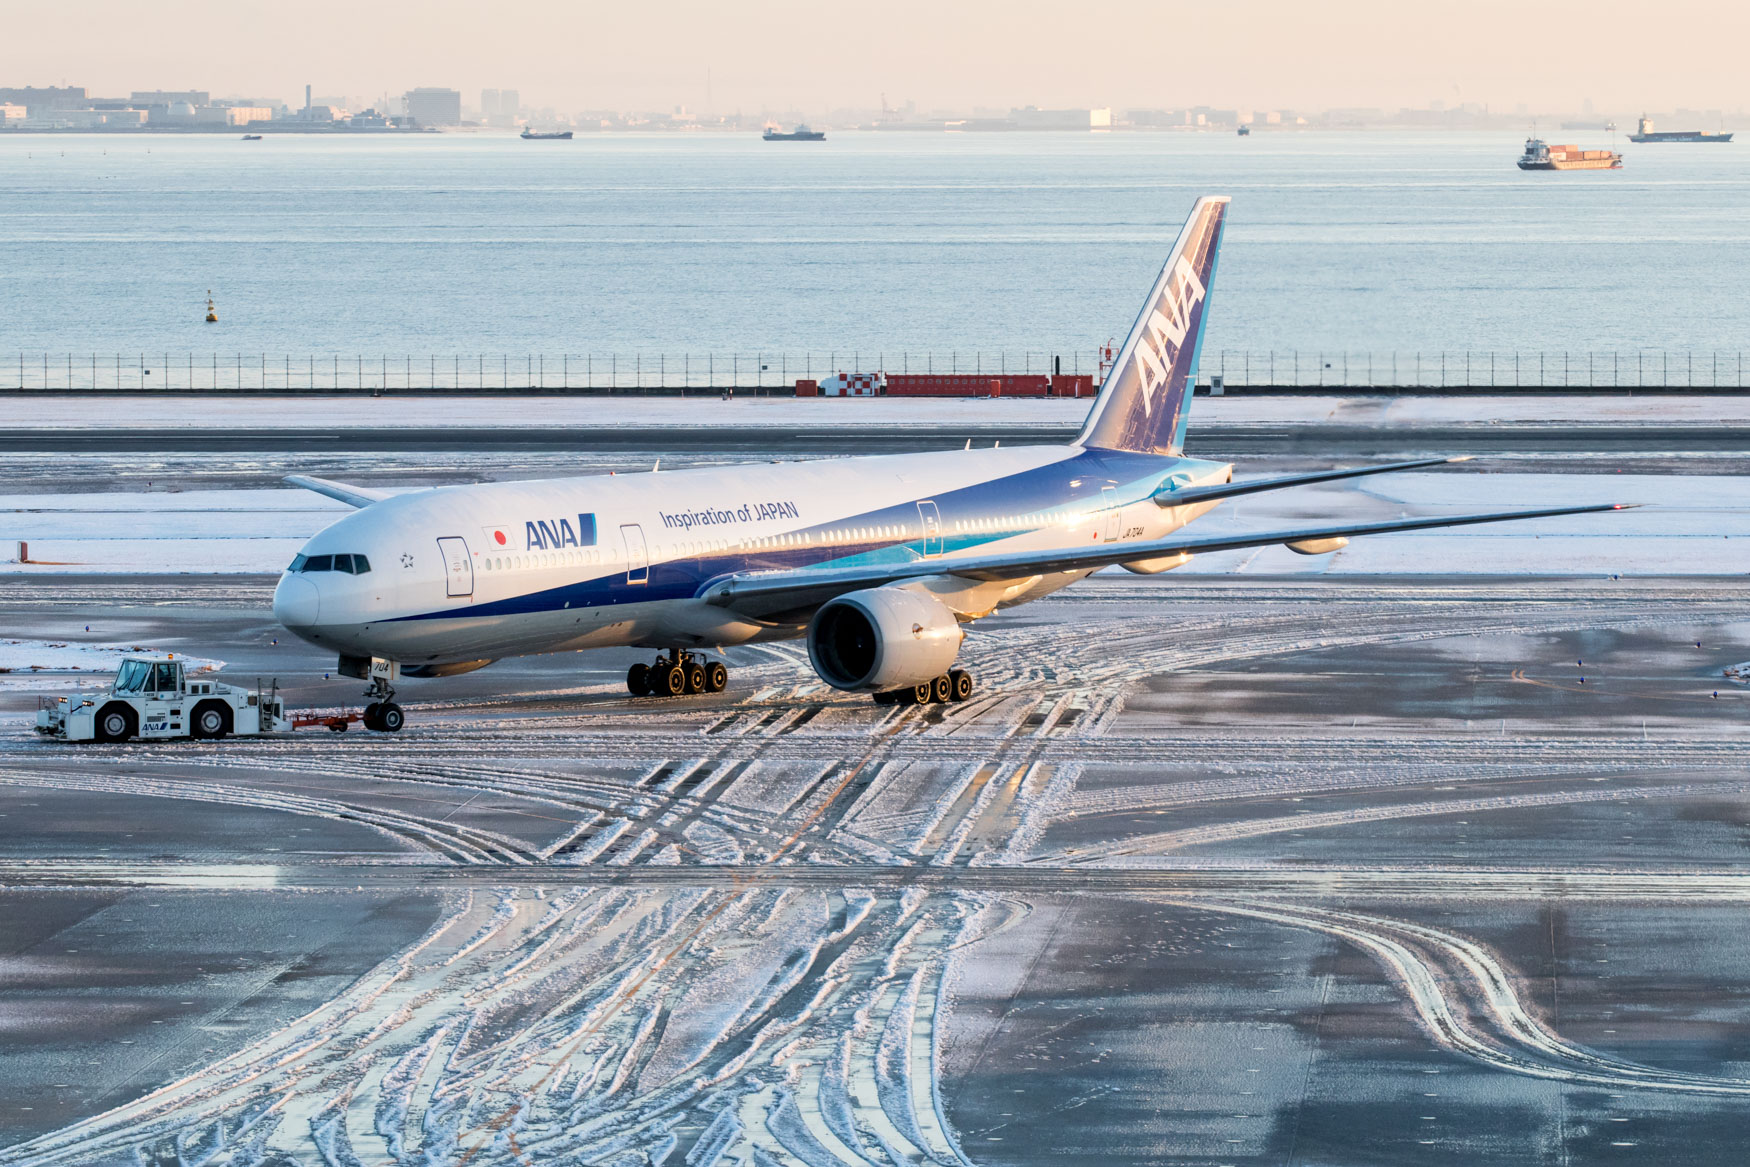 ANA 777-200 Being Towed